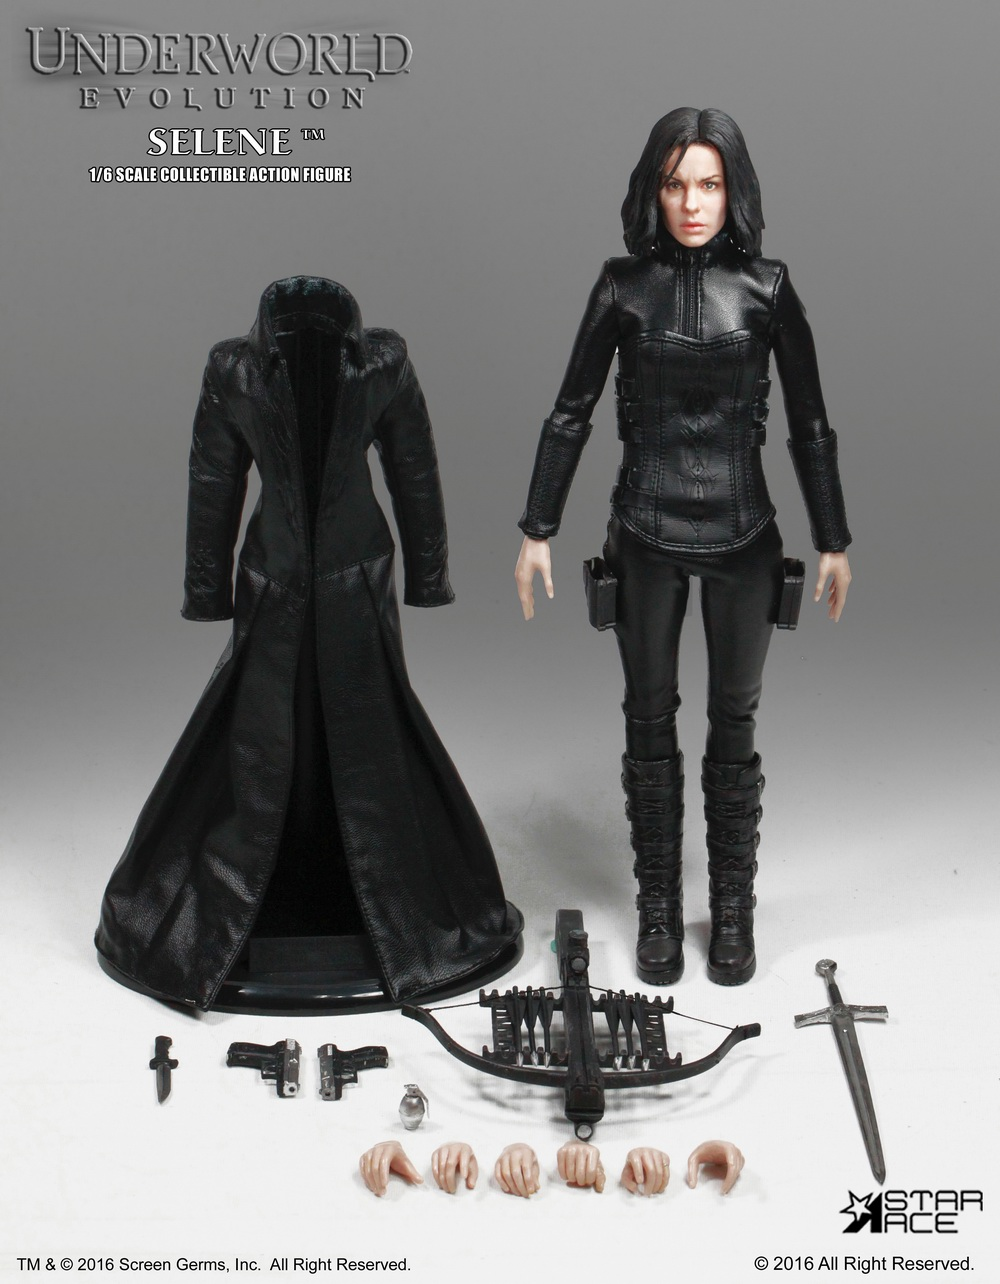 1:6 scale Super flexible Female figure 12 action figure doll Collectible model toy Underworld: Evolution Selene Kate Beckinsale 1 6 scale model metal gear solid v the phantom d dog diamond dog about 23cm collectible figure model toy gift